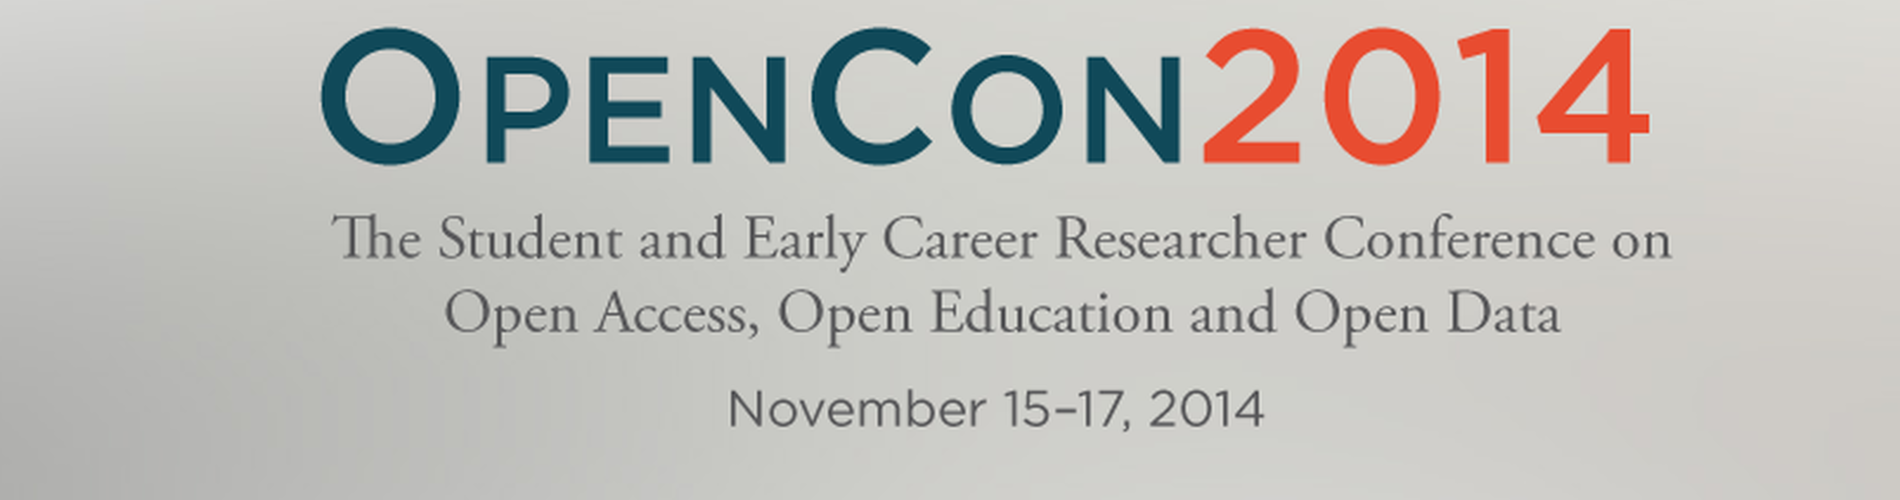 OpenCon 2014 : In the heart of Open Science advocacy feature image